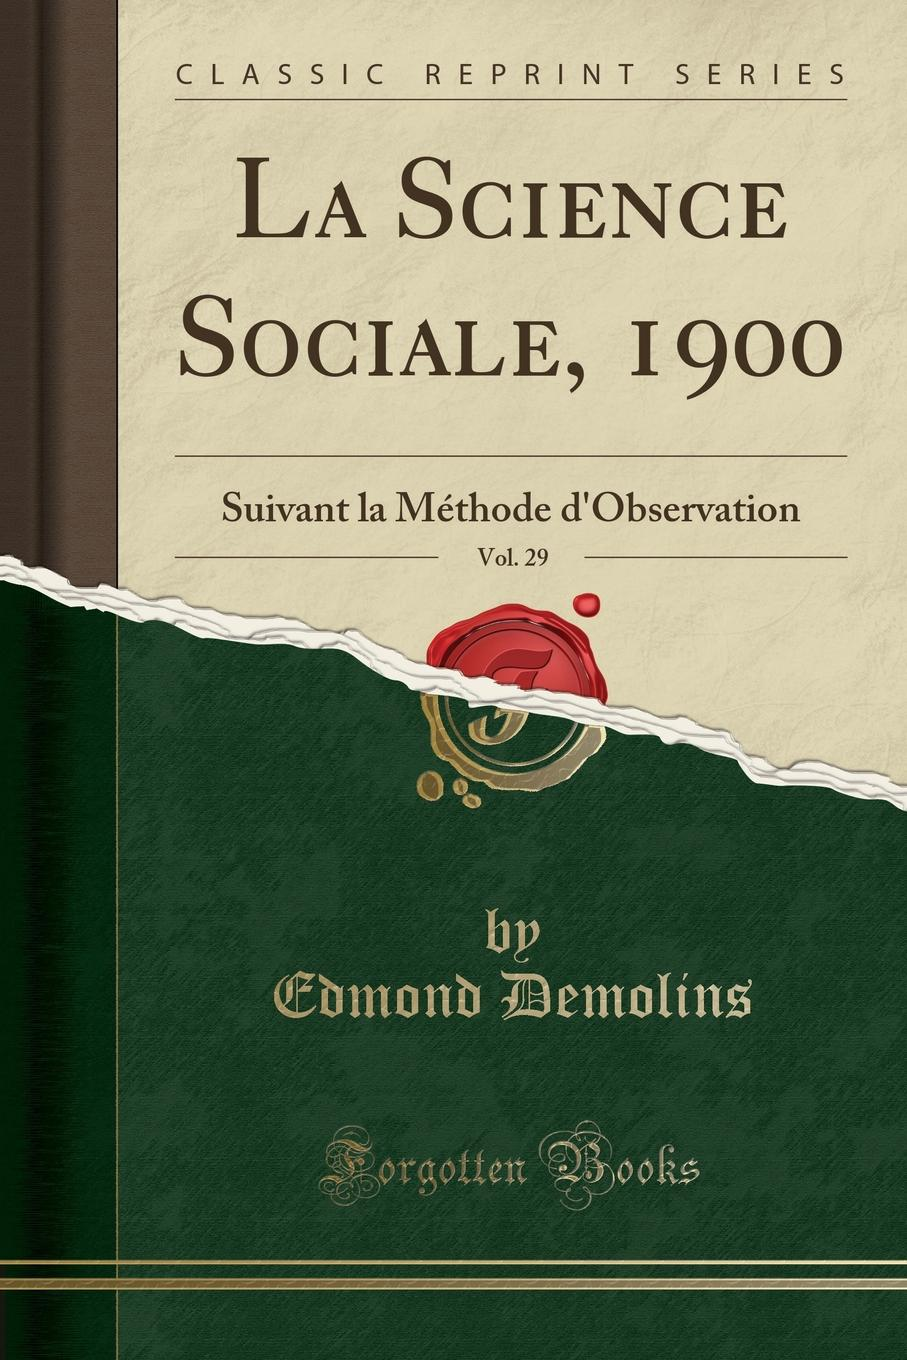 La Science Sociale, 1900, Vol. 29. Suivant la Methode d.Observation (Classic Reprint) Excerpt from La Science Sociale, 1900, Vol. 29: Suivant la MР?thode...